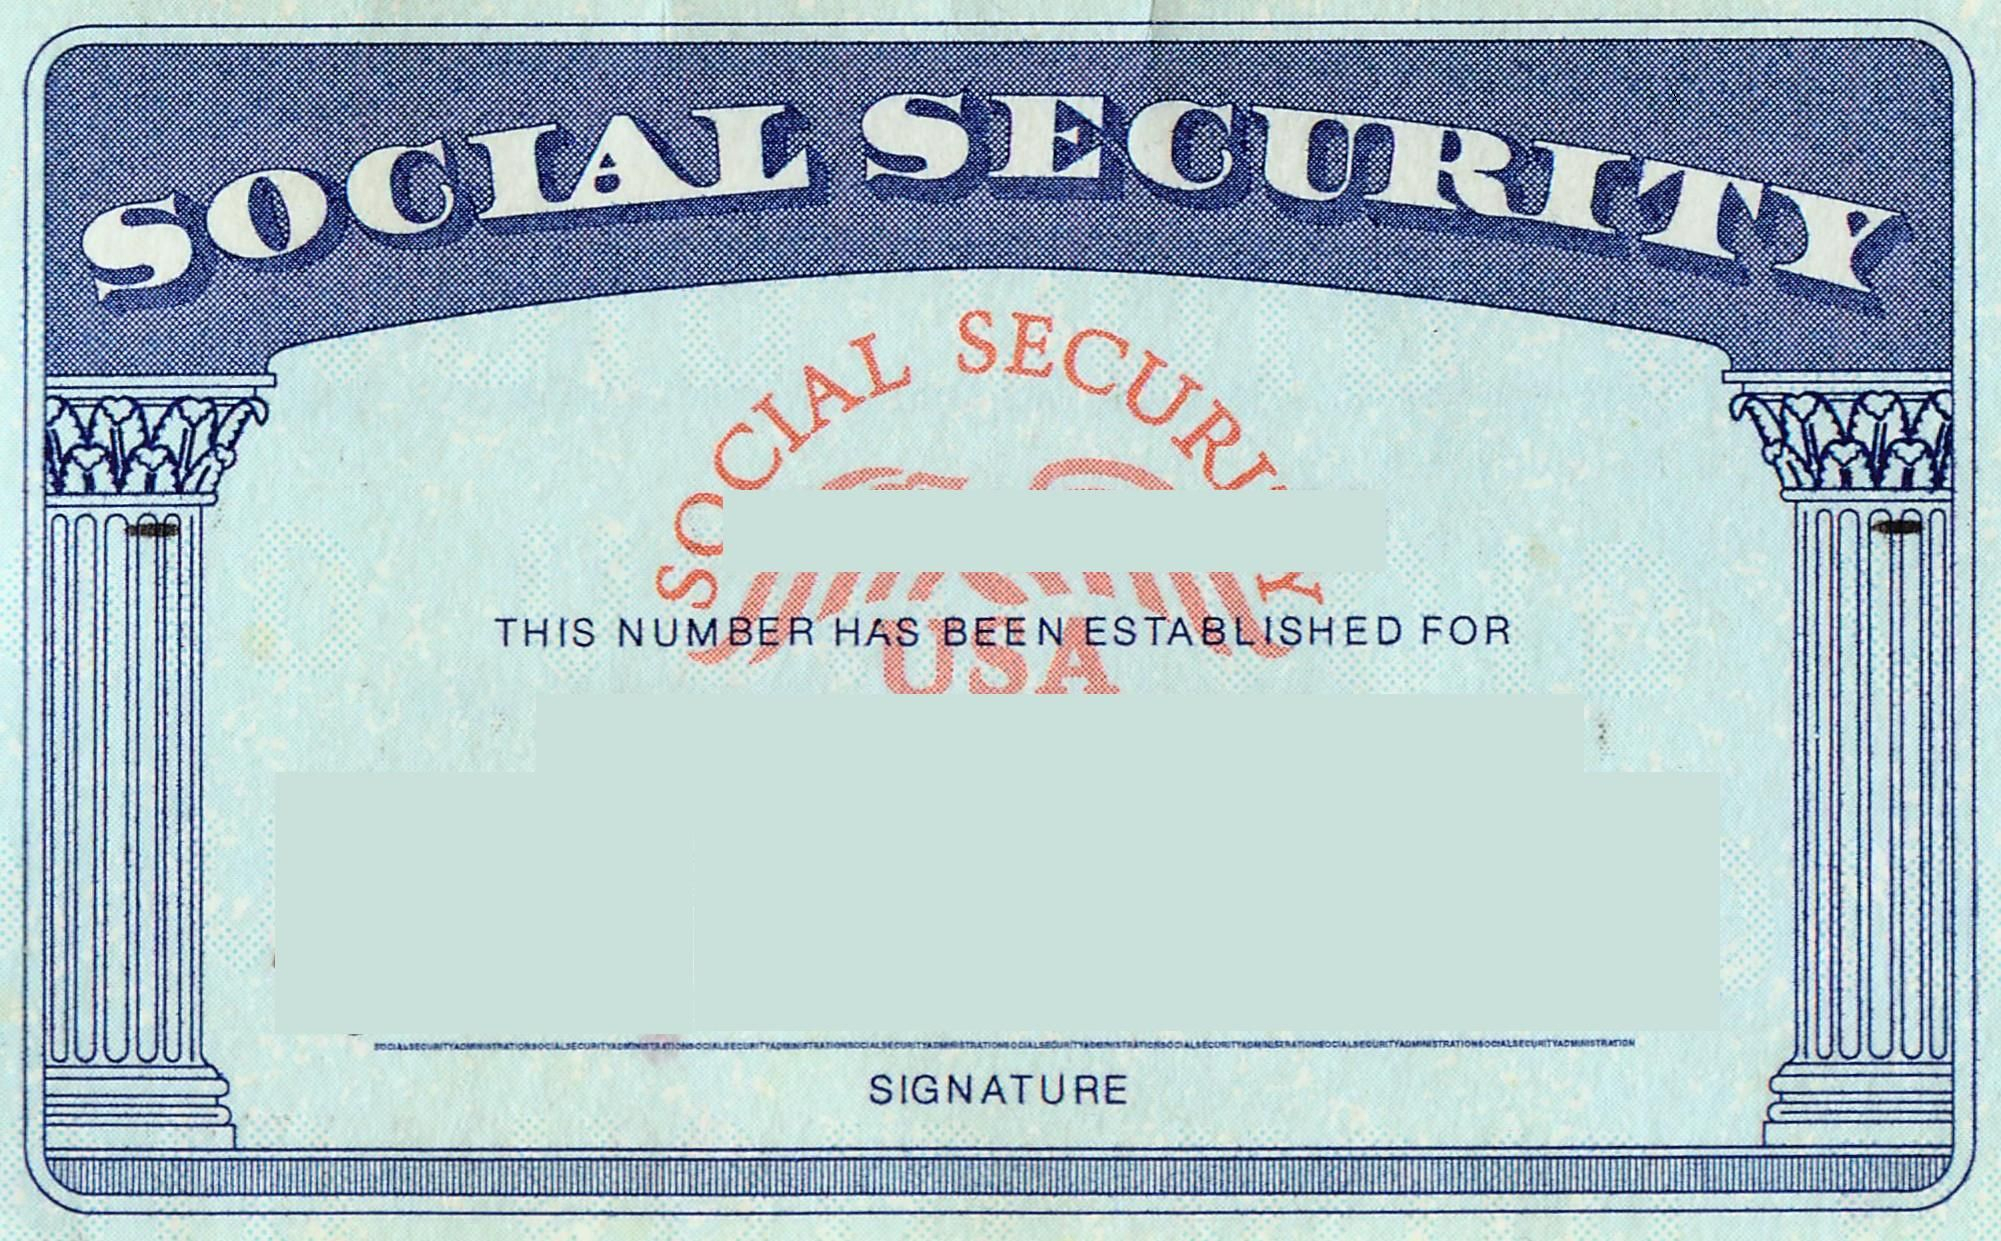 Blank Social Security Card Template | Social Security Card Within Blank Social Security Card Template Download